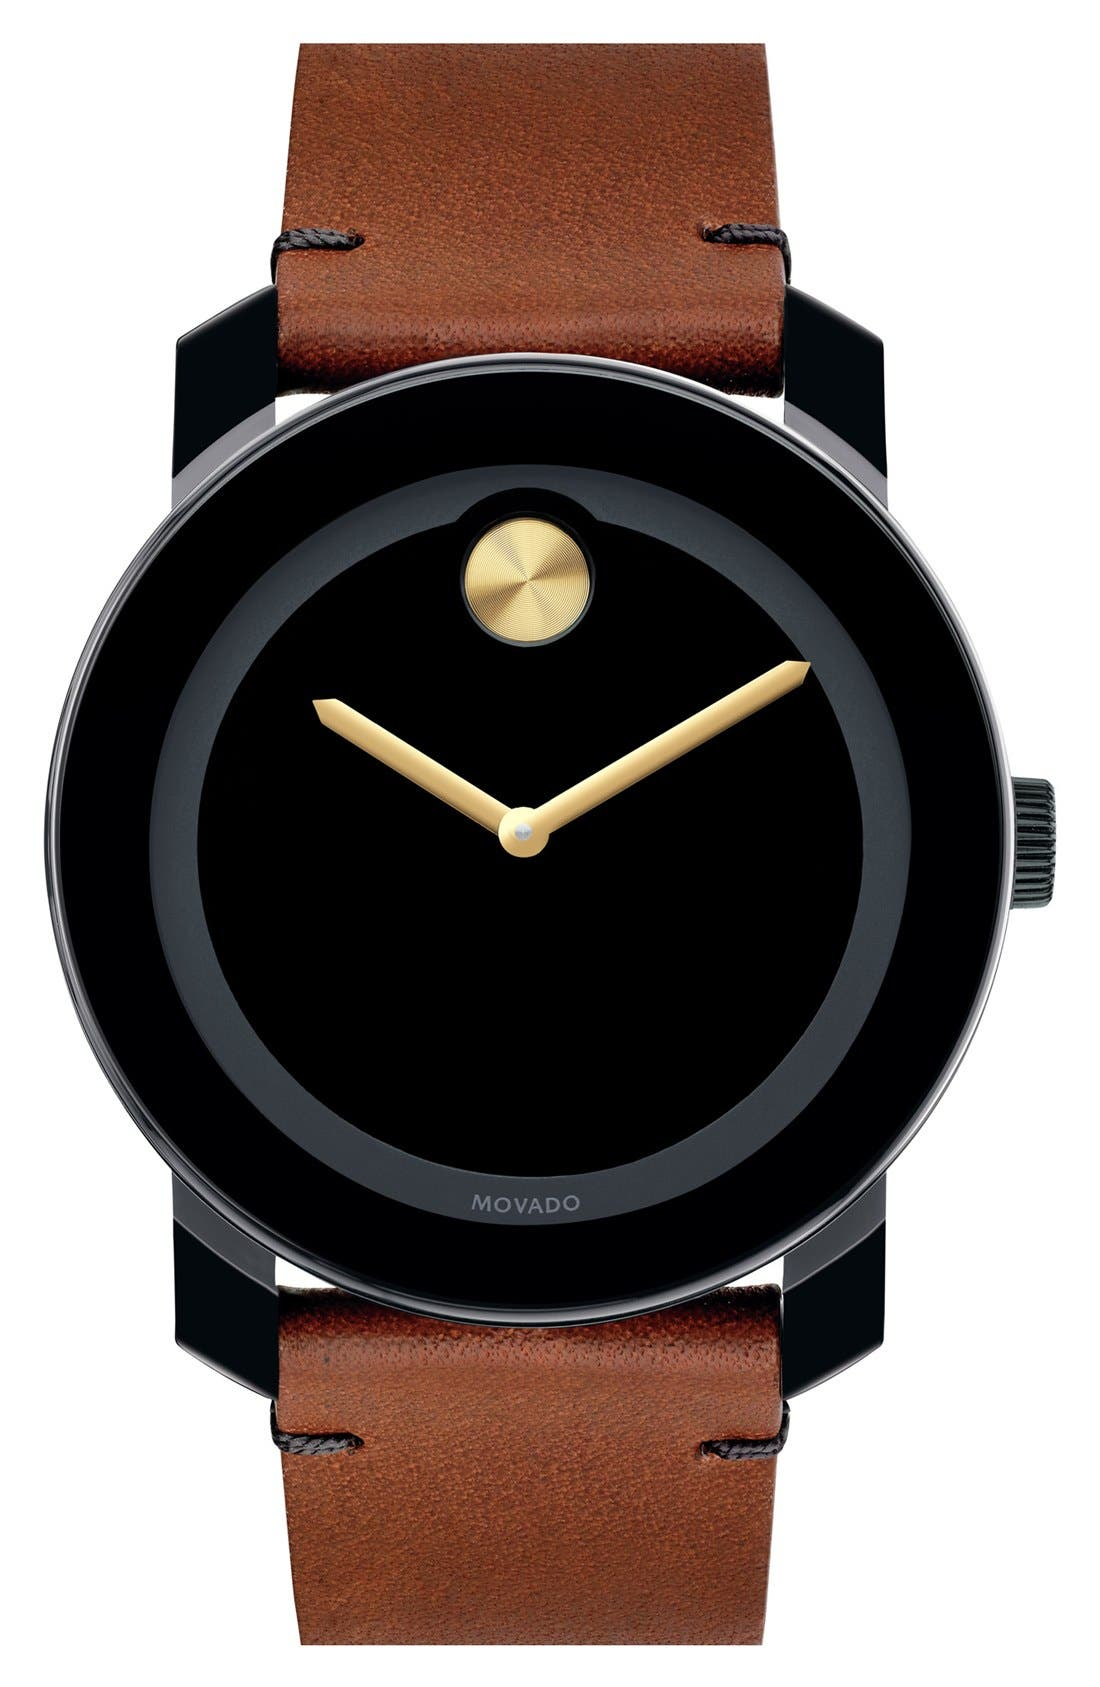 MOVADO, 'Bold' Leather Strap Watch, 42mm, Main thumbnail 1, color, BROWN/ BLACK/ GOLD